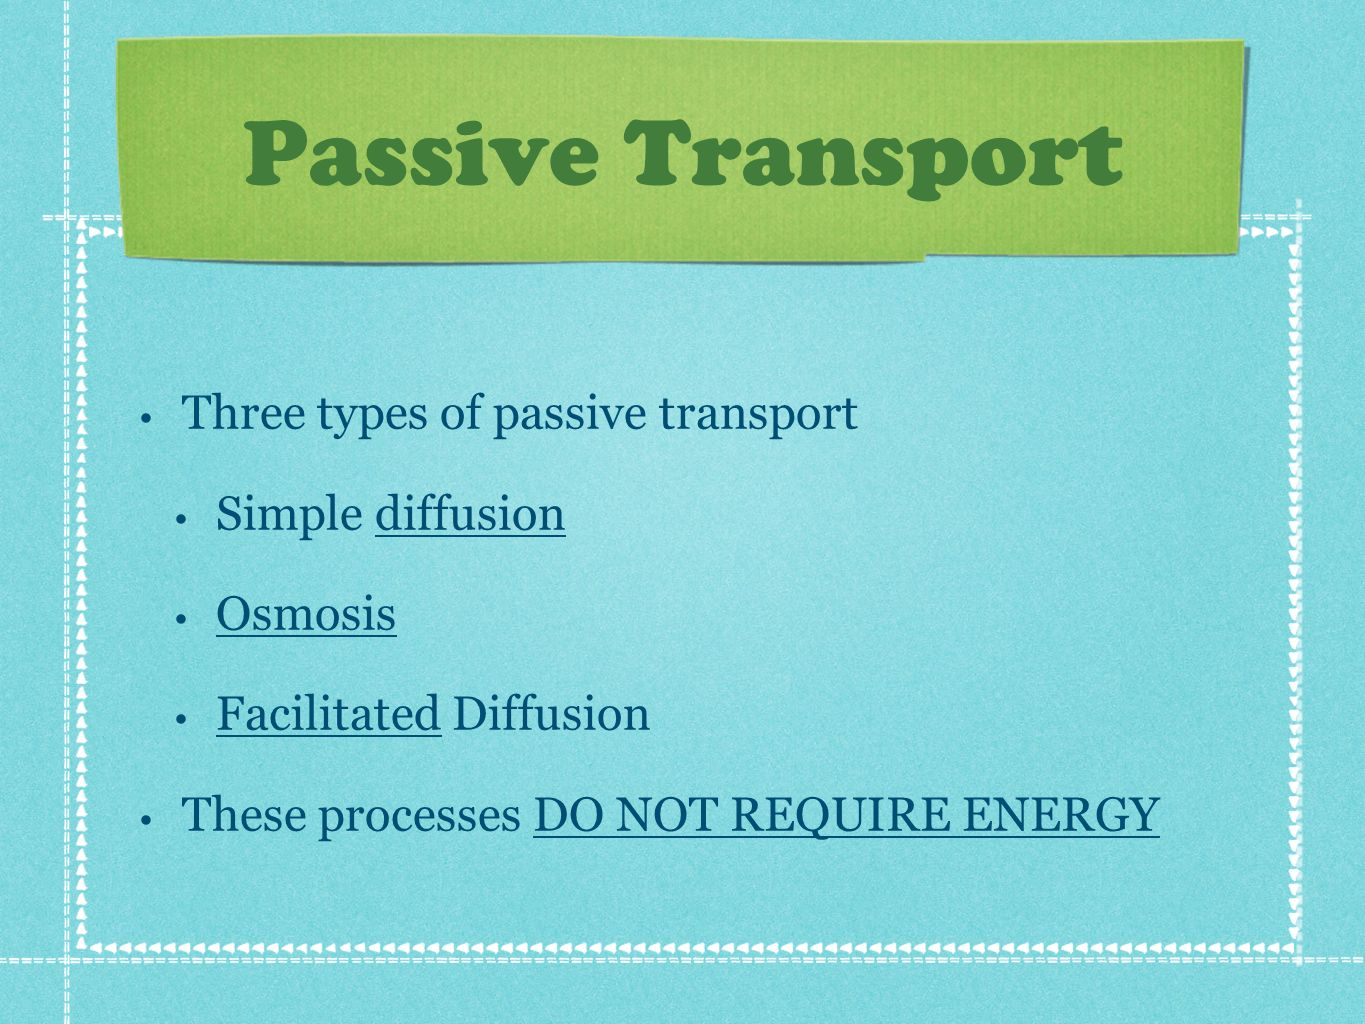 4 things cells do to maintain homeostasis - 4 Passive